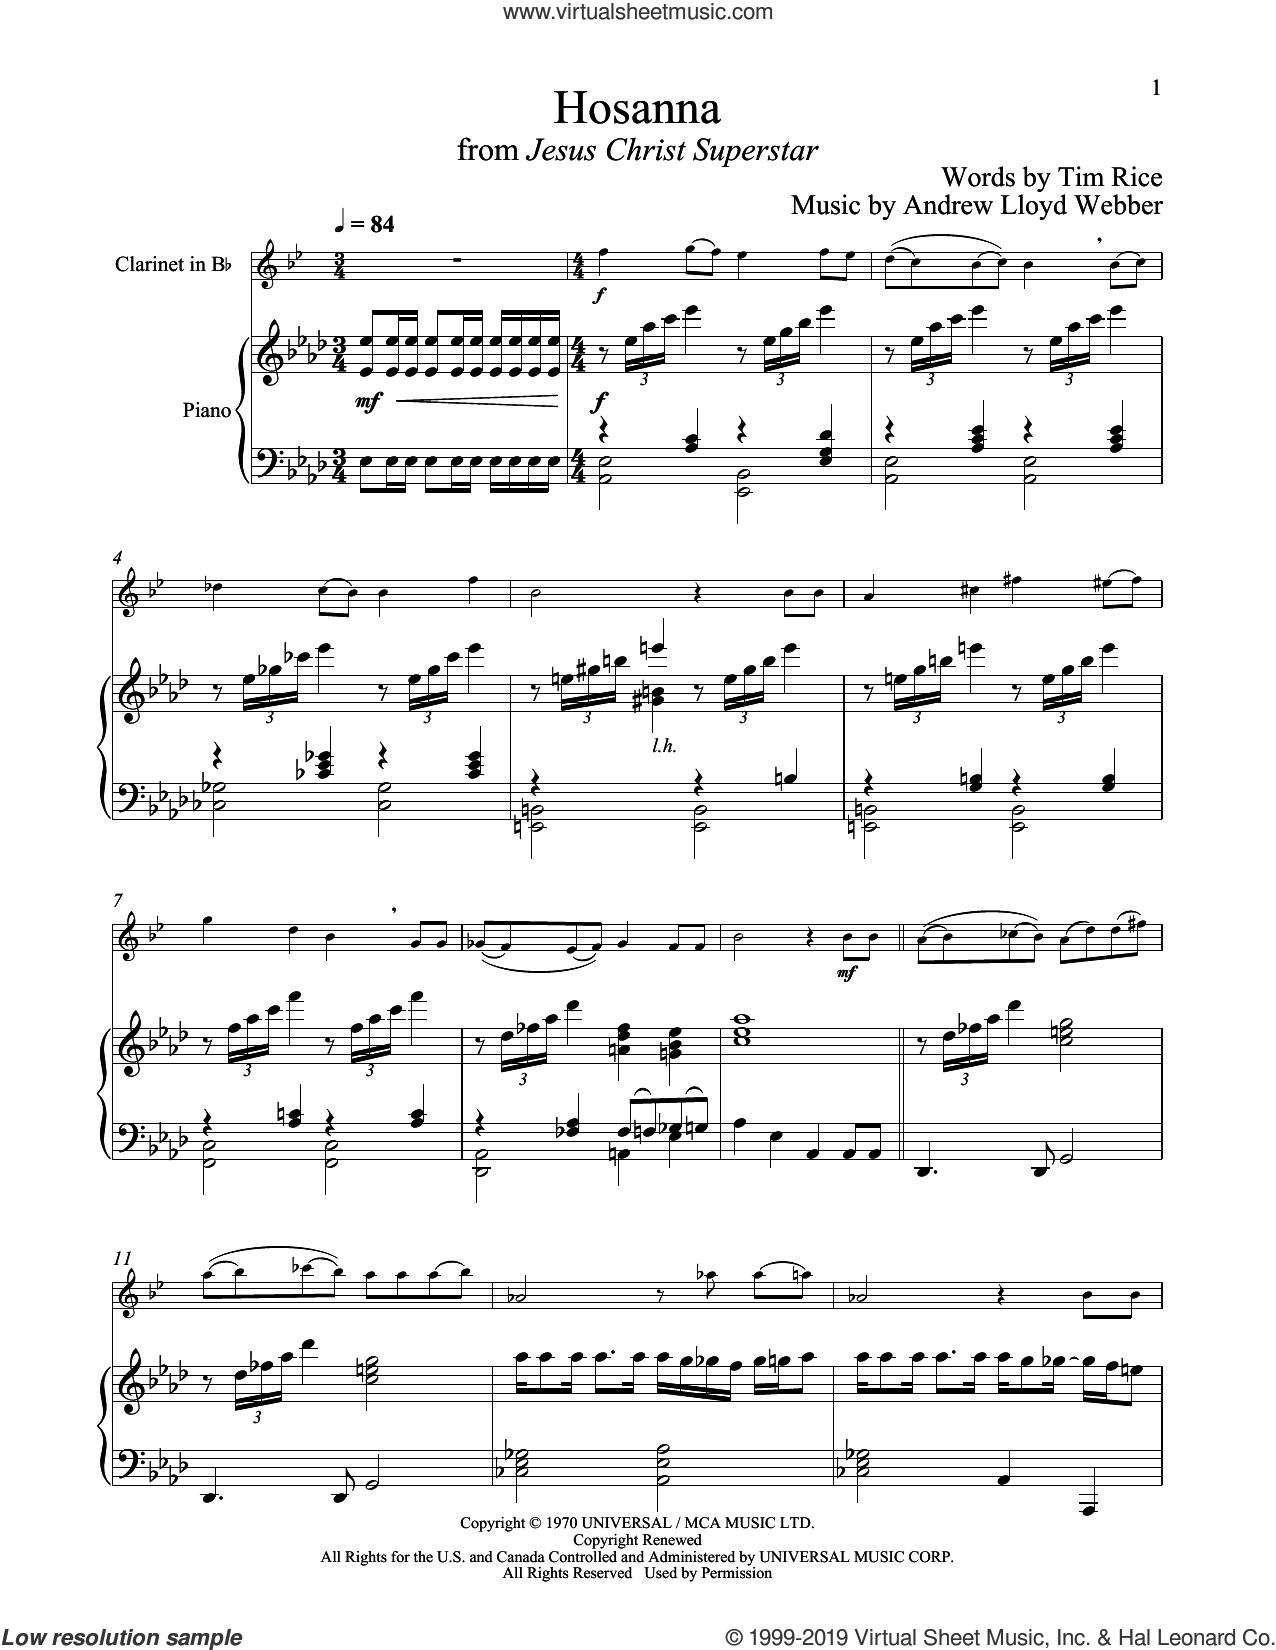 Hosanna (from Jesus Christ Superstar) sheet music for clarinet and piano by Andrew Lloyd Webber and Tim Rice, intermediate skill level